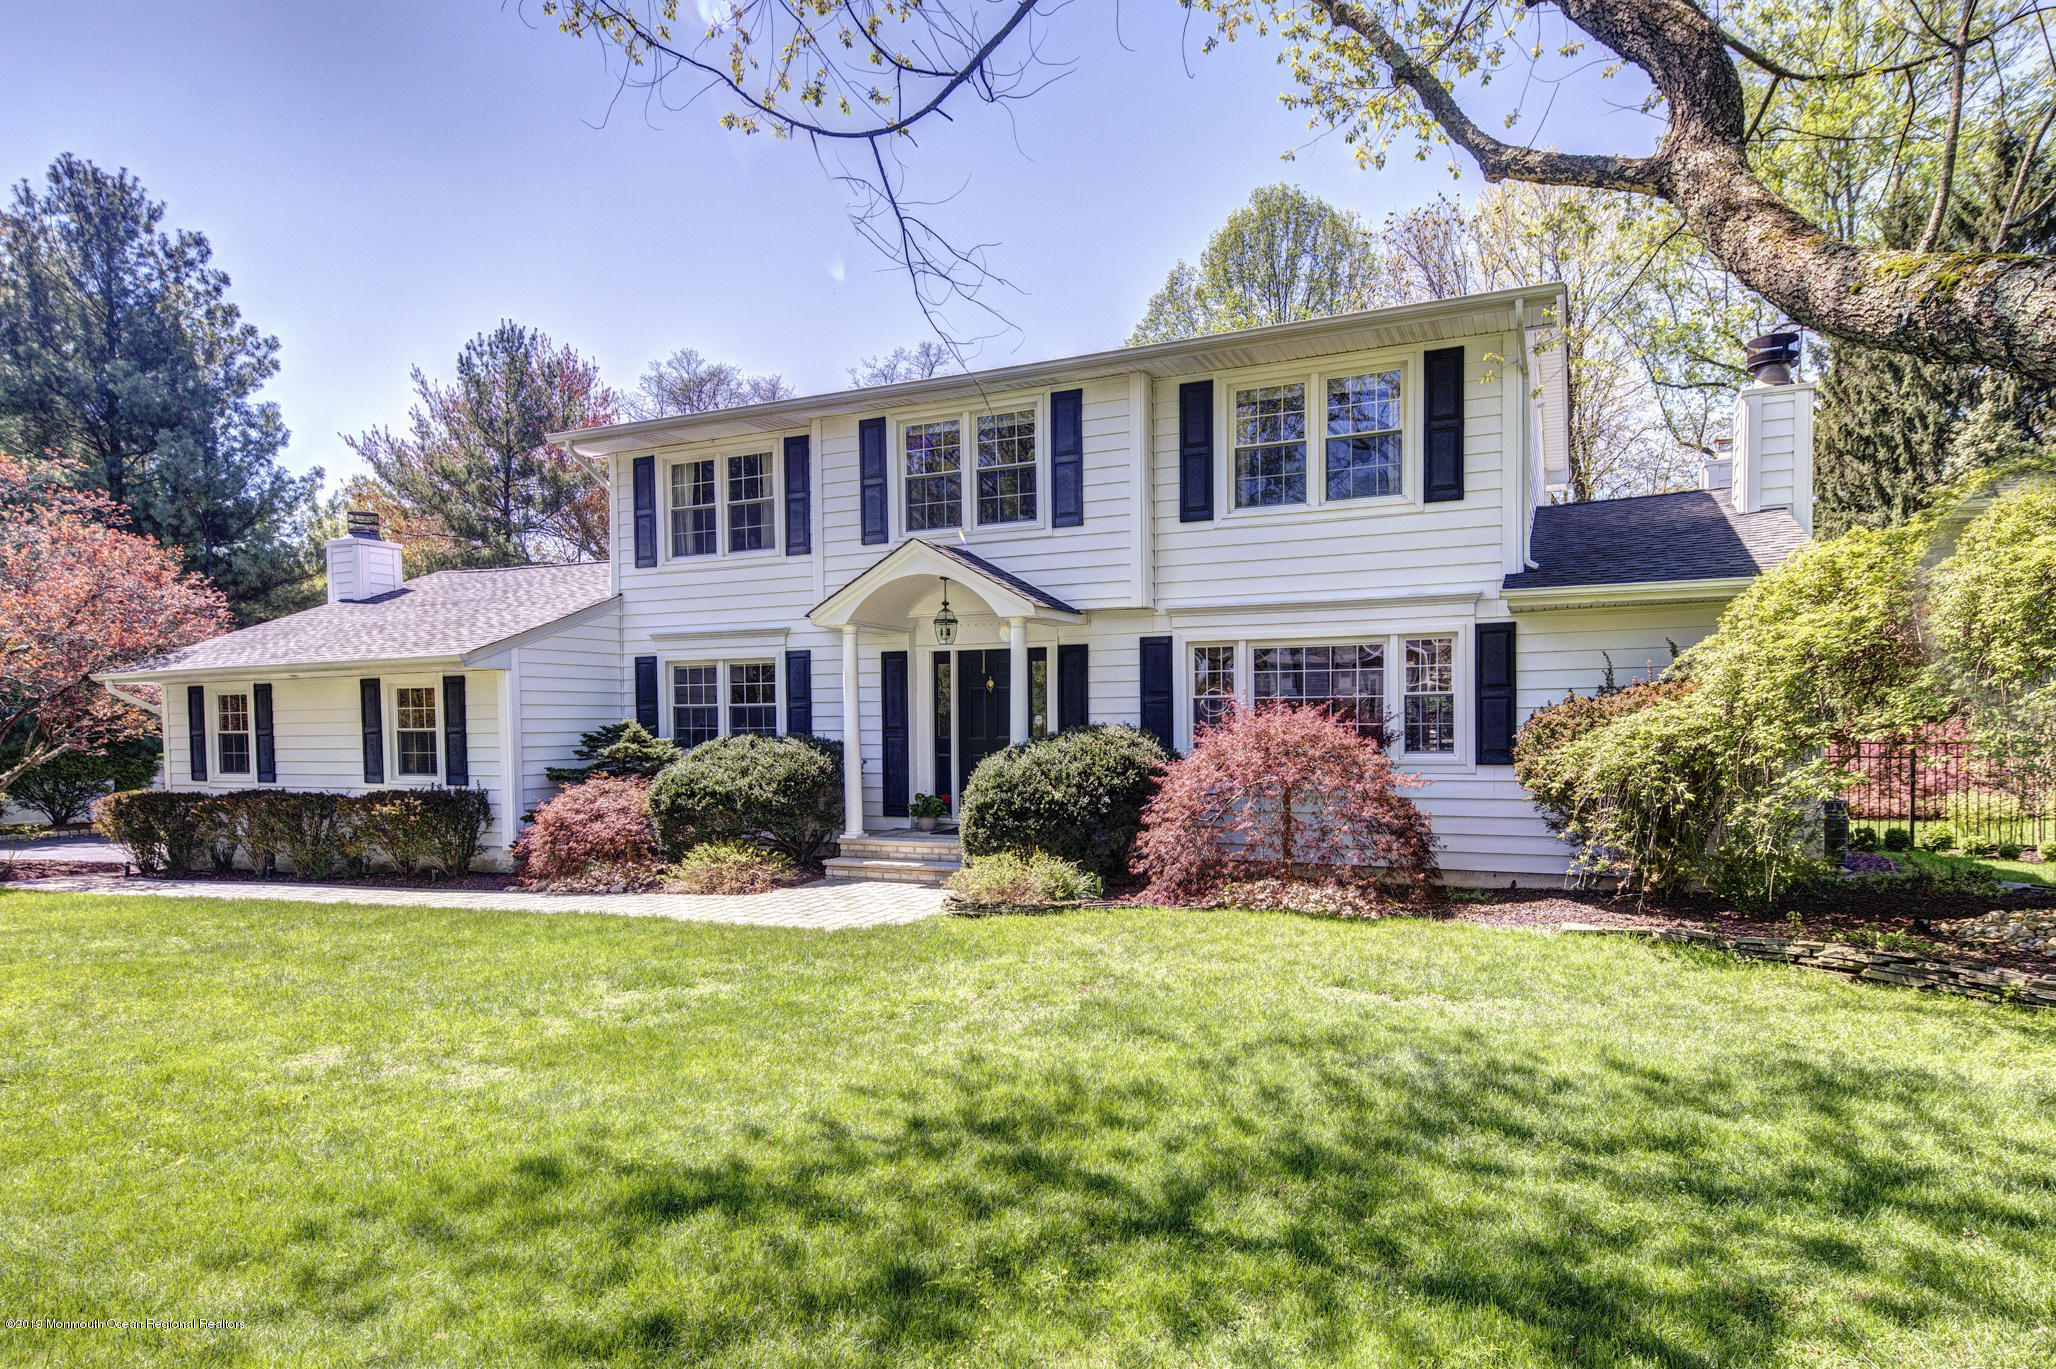 Photo of 26 Rolling Knolls Drive, Middletown, NJ 07748